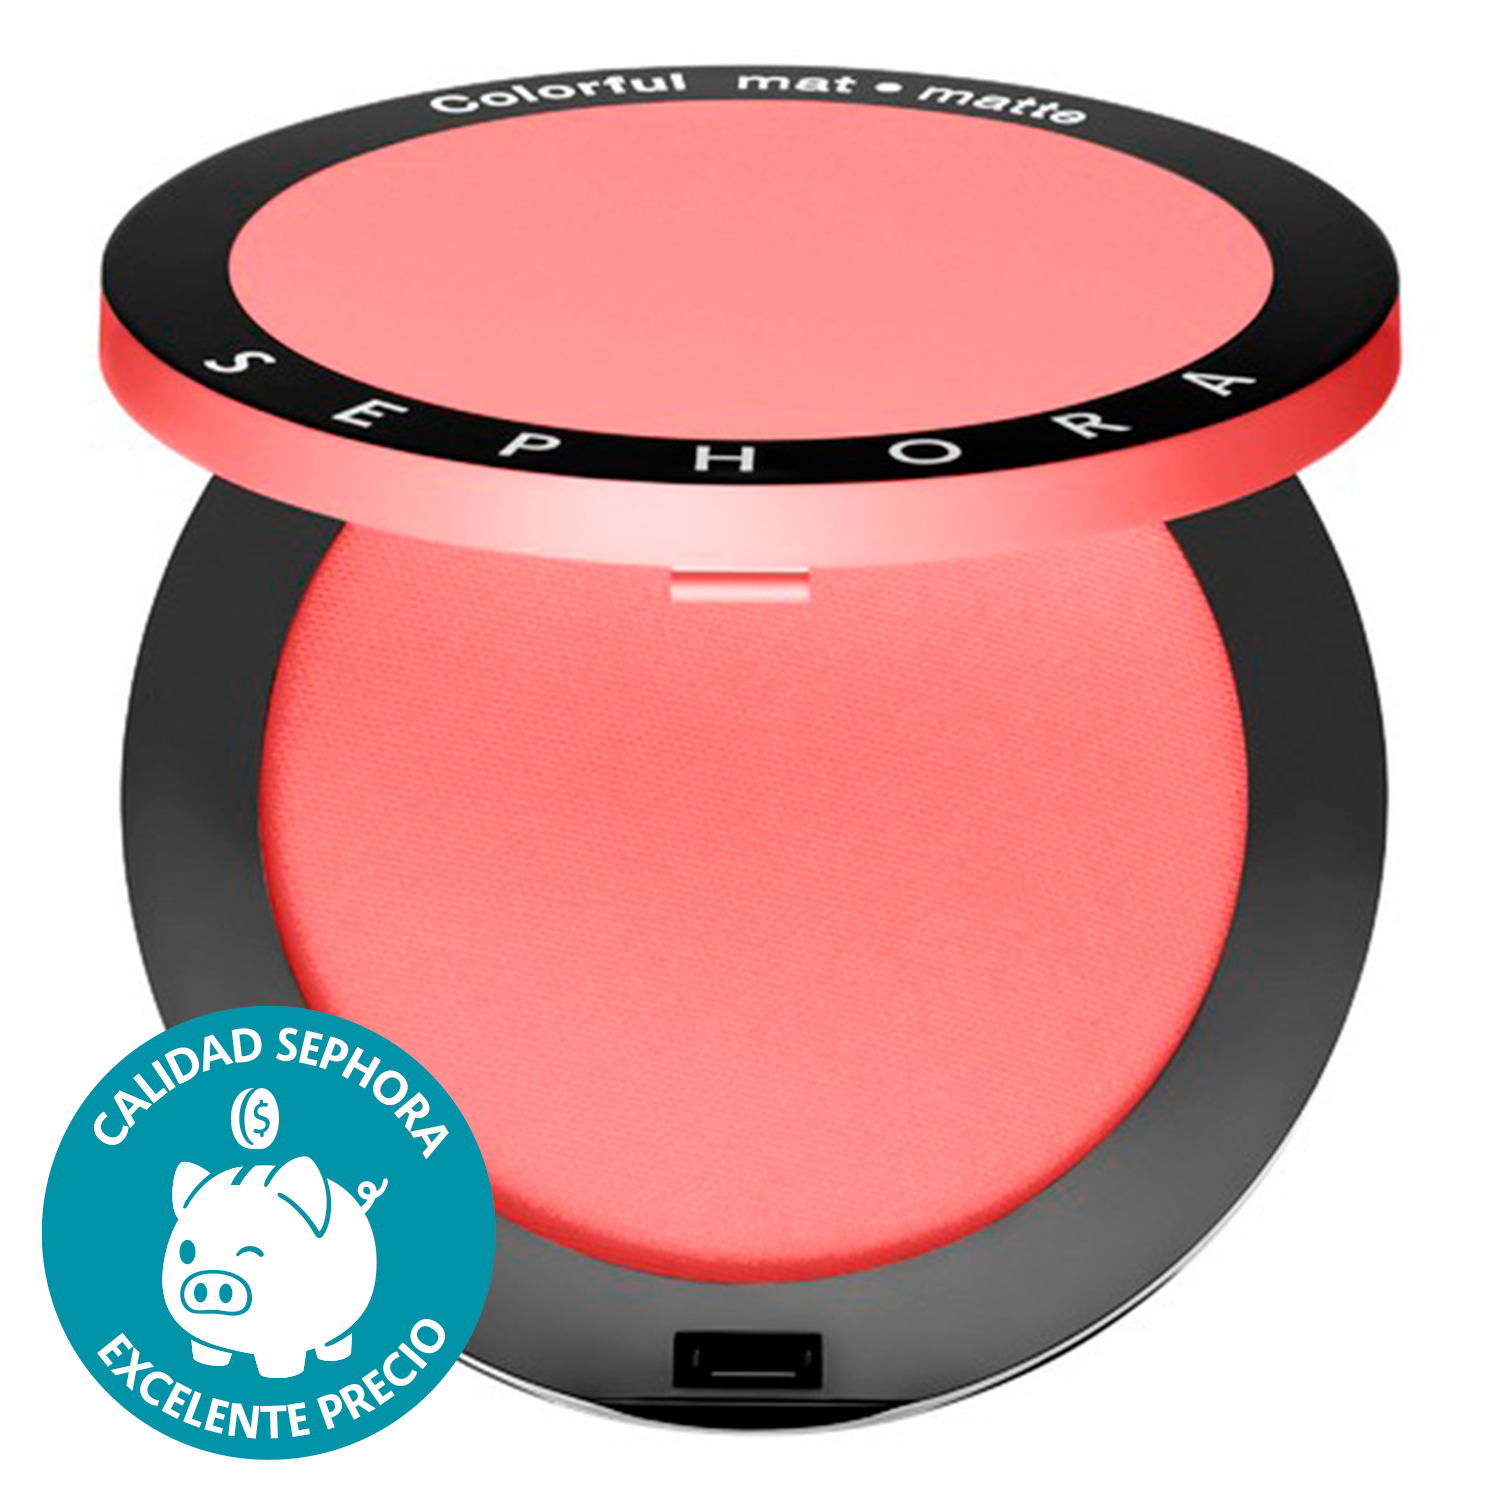 COLORFUL BLUSH BY SEPHORA COLLECTION